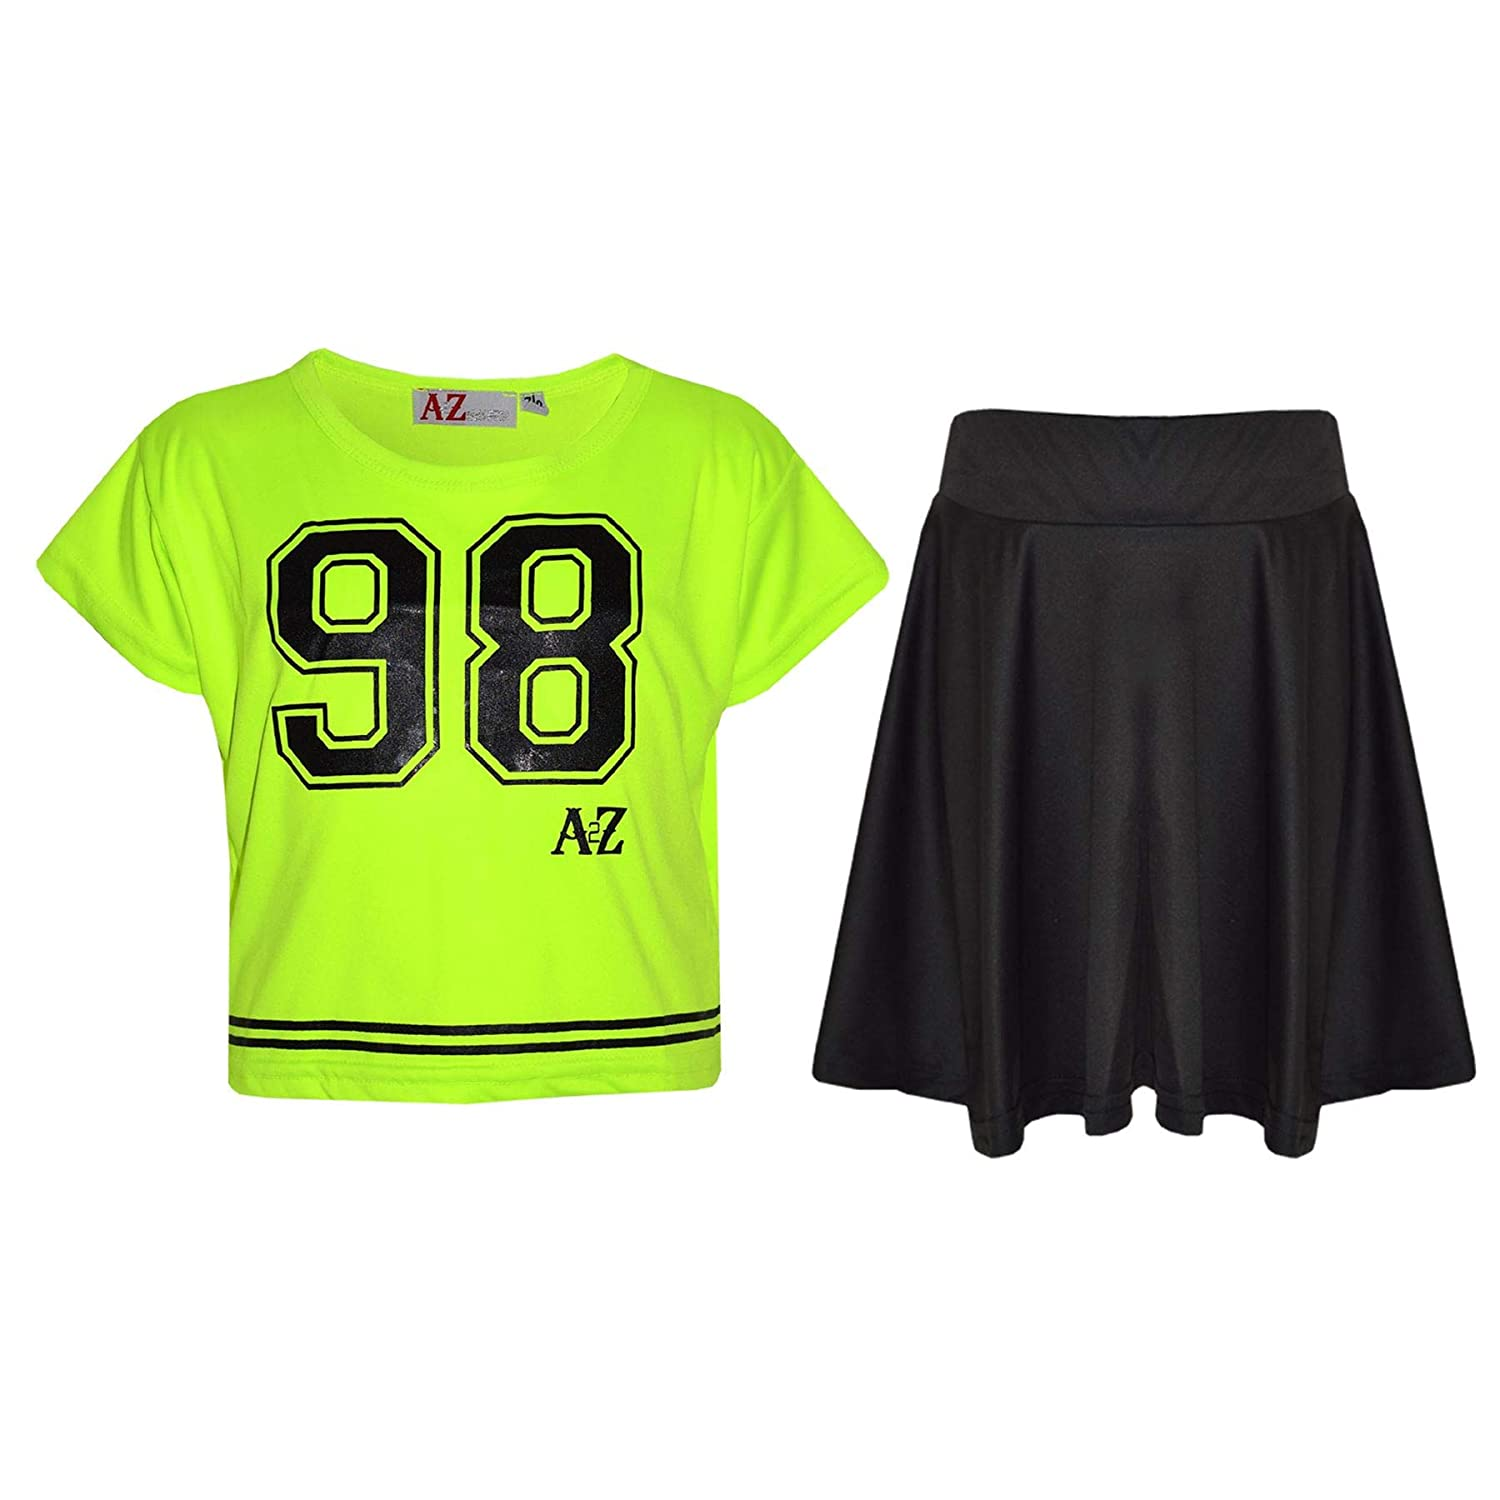 A2Z 4 Kids®®®® Girls Top Kids 98 Print Stylish Crop Top & Skater Skirt Set 7-13 Y